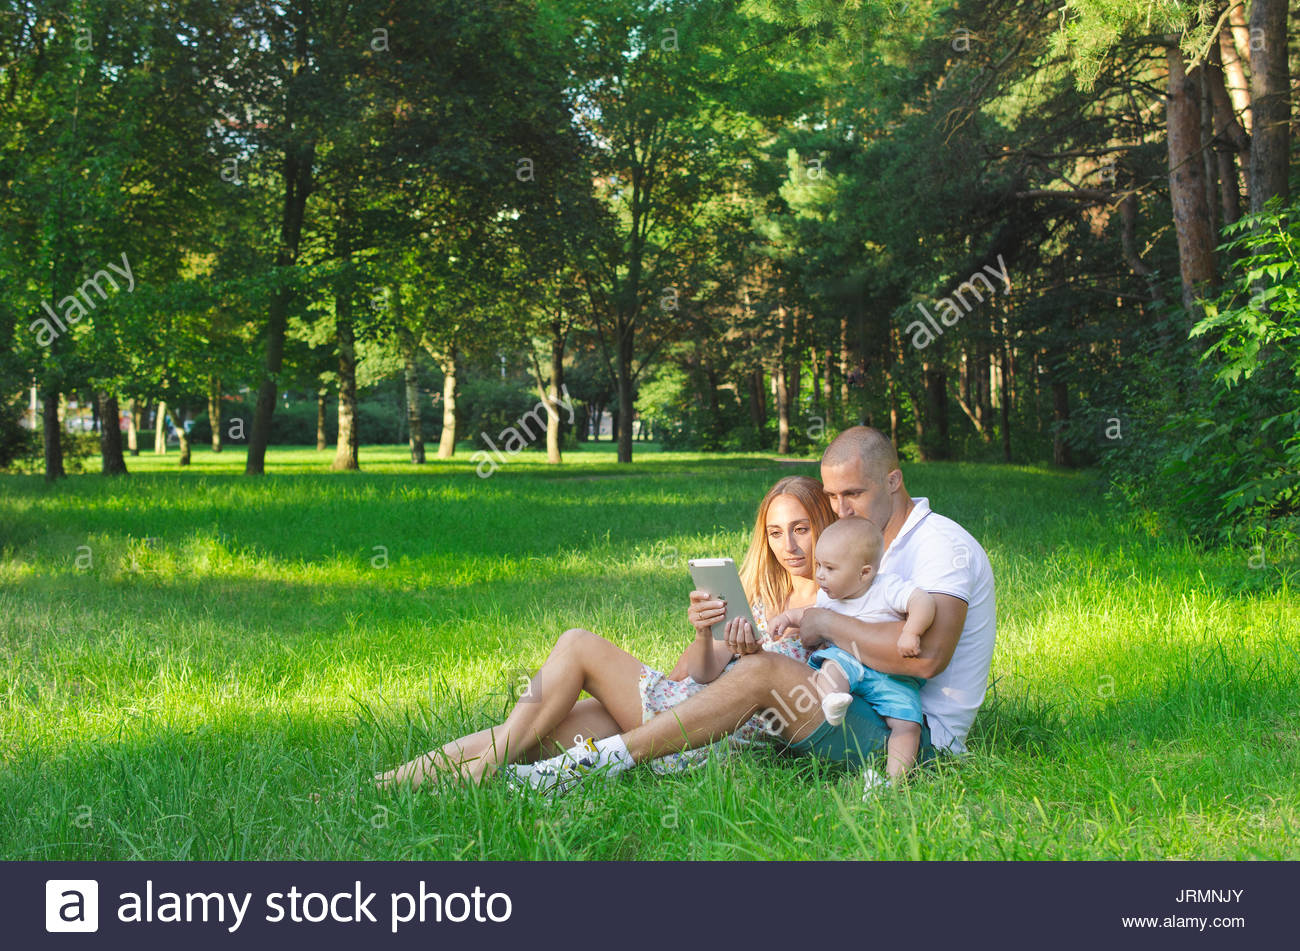 Family spending time with a tablet on nature in summer Stock Photo